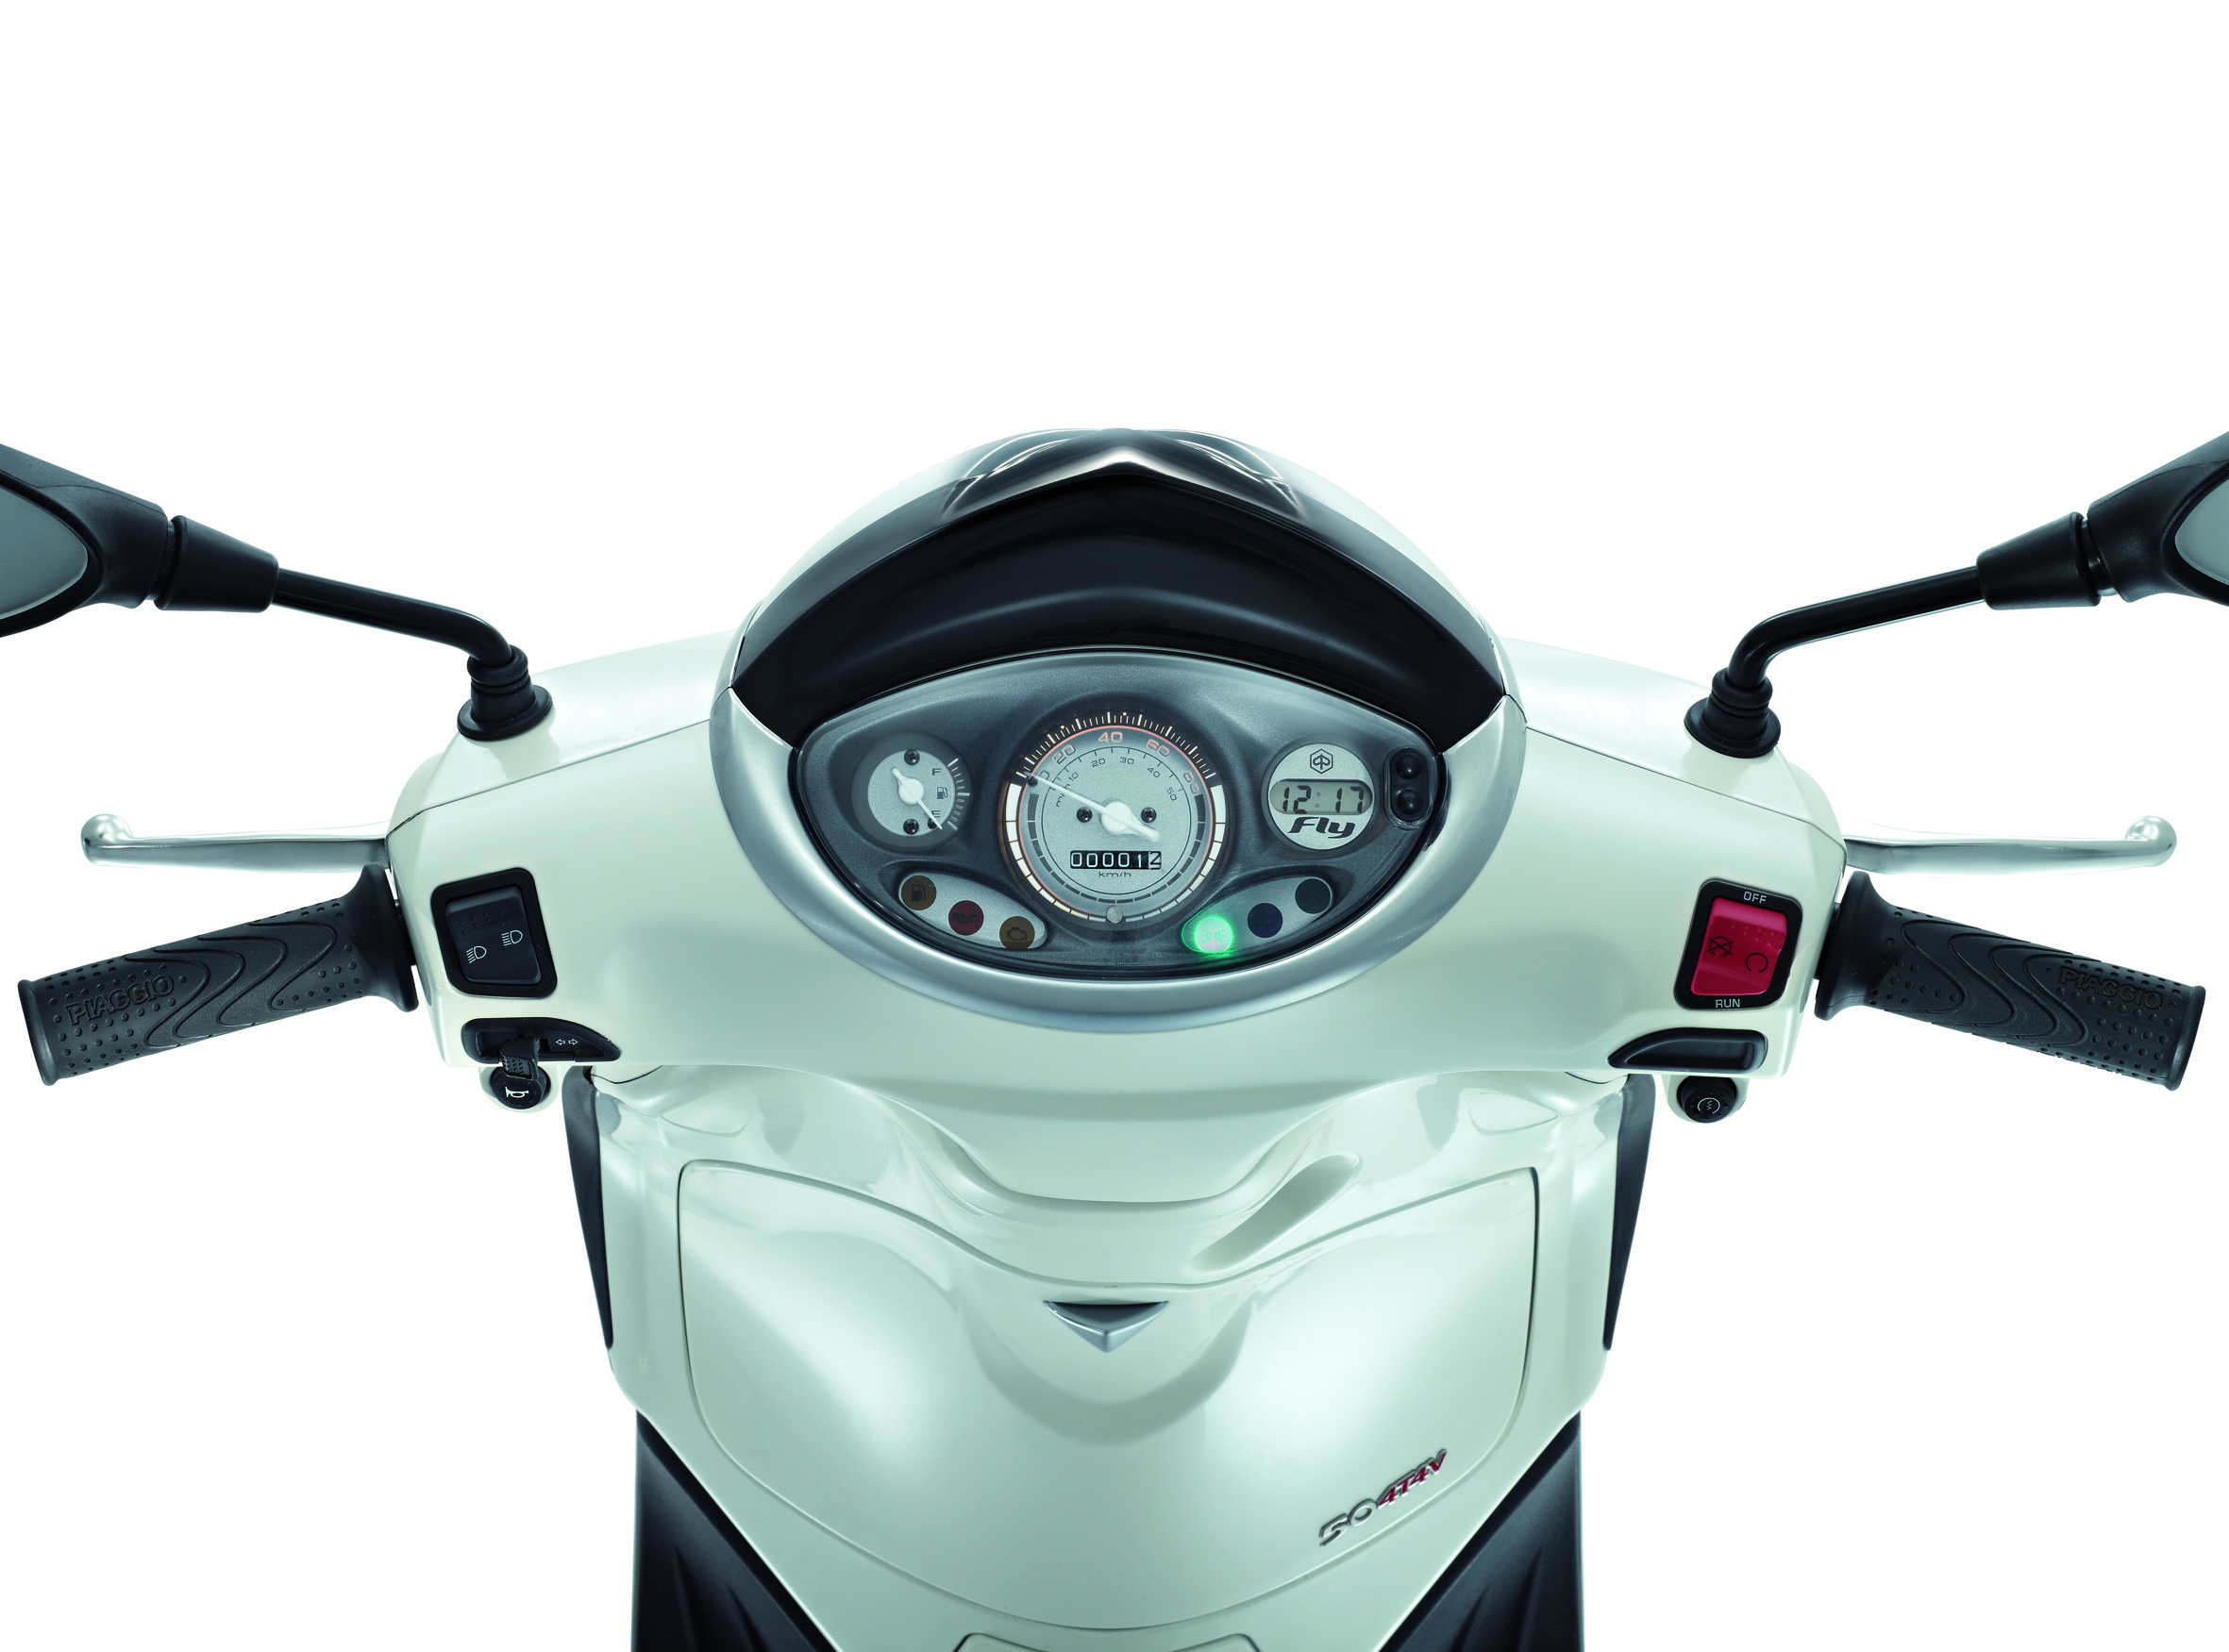 new piaggio fly 50 4 stoke 4v 2012 | cd scooters